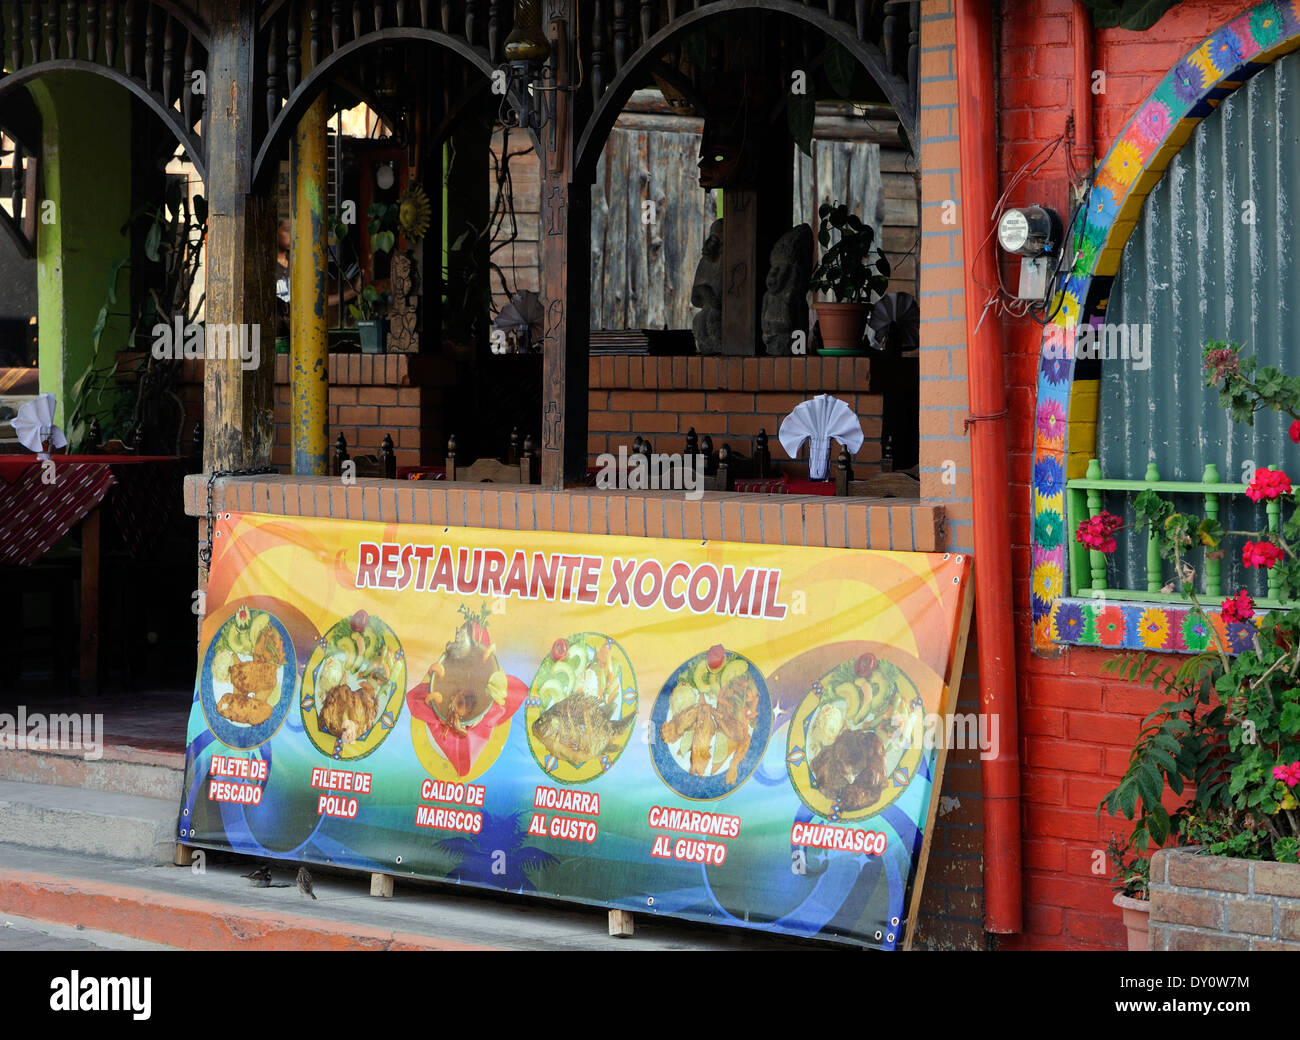 Un menu illustré à l'extérieur d'un restaurant. Panajachel, République du Guatemala. Photo Stock